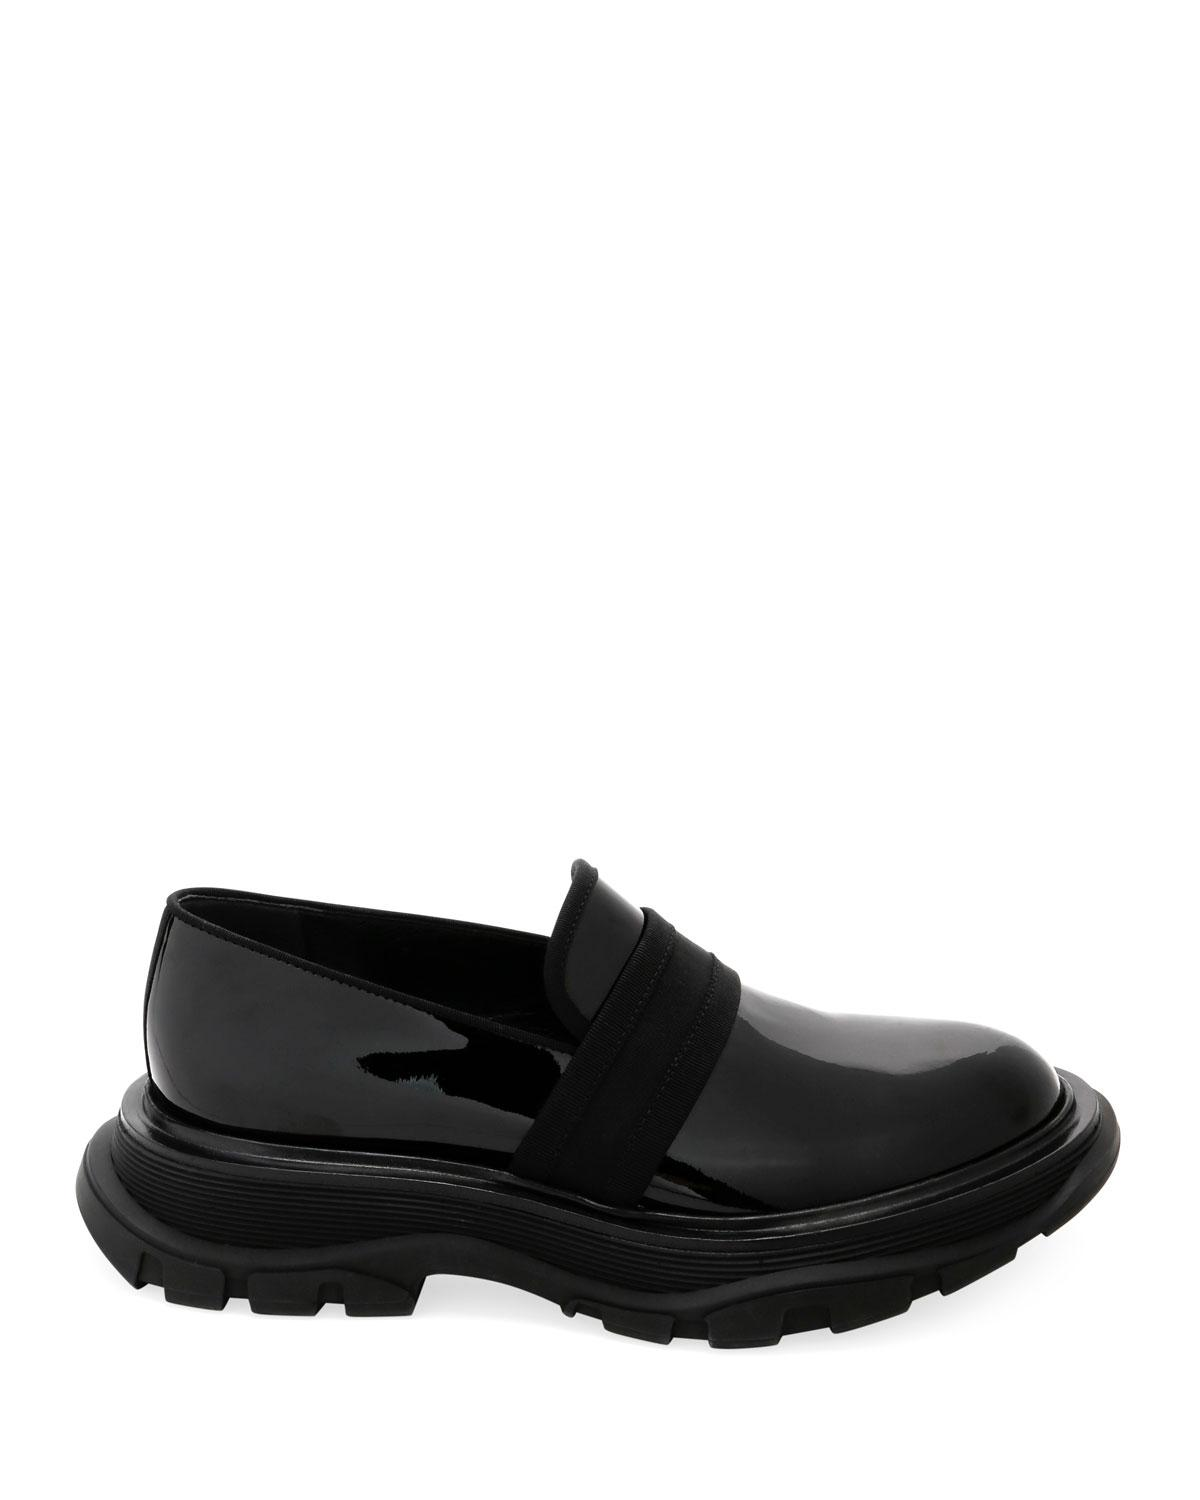 8edf313c238 Lyst - Alexander McQueen Men s Leather Thick Rubber Sole Dress Shoe in Black  for Men